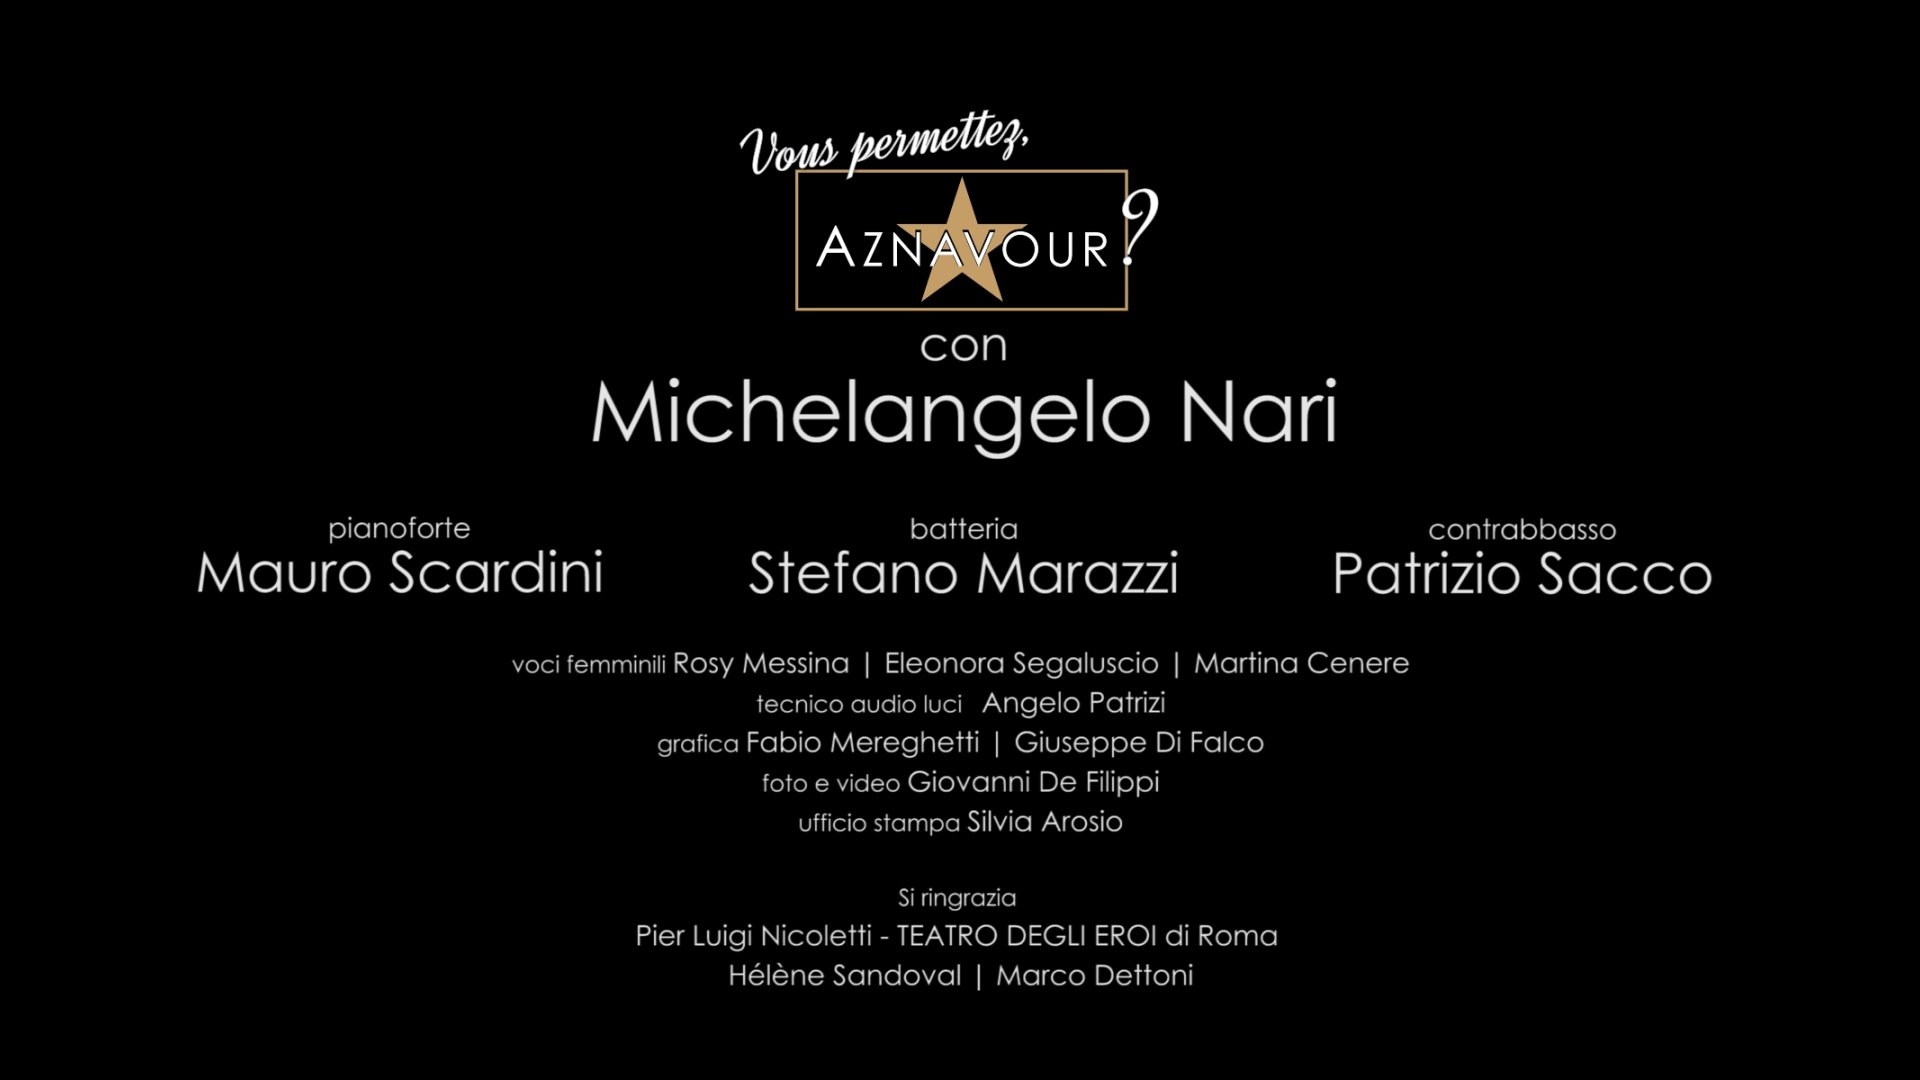 Immagine Video - Trailer Concerto - Michelangelo Nari